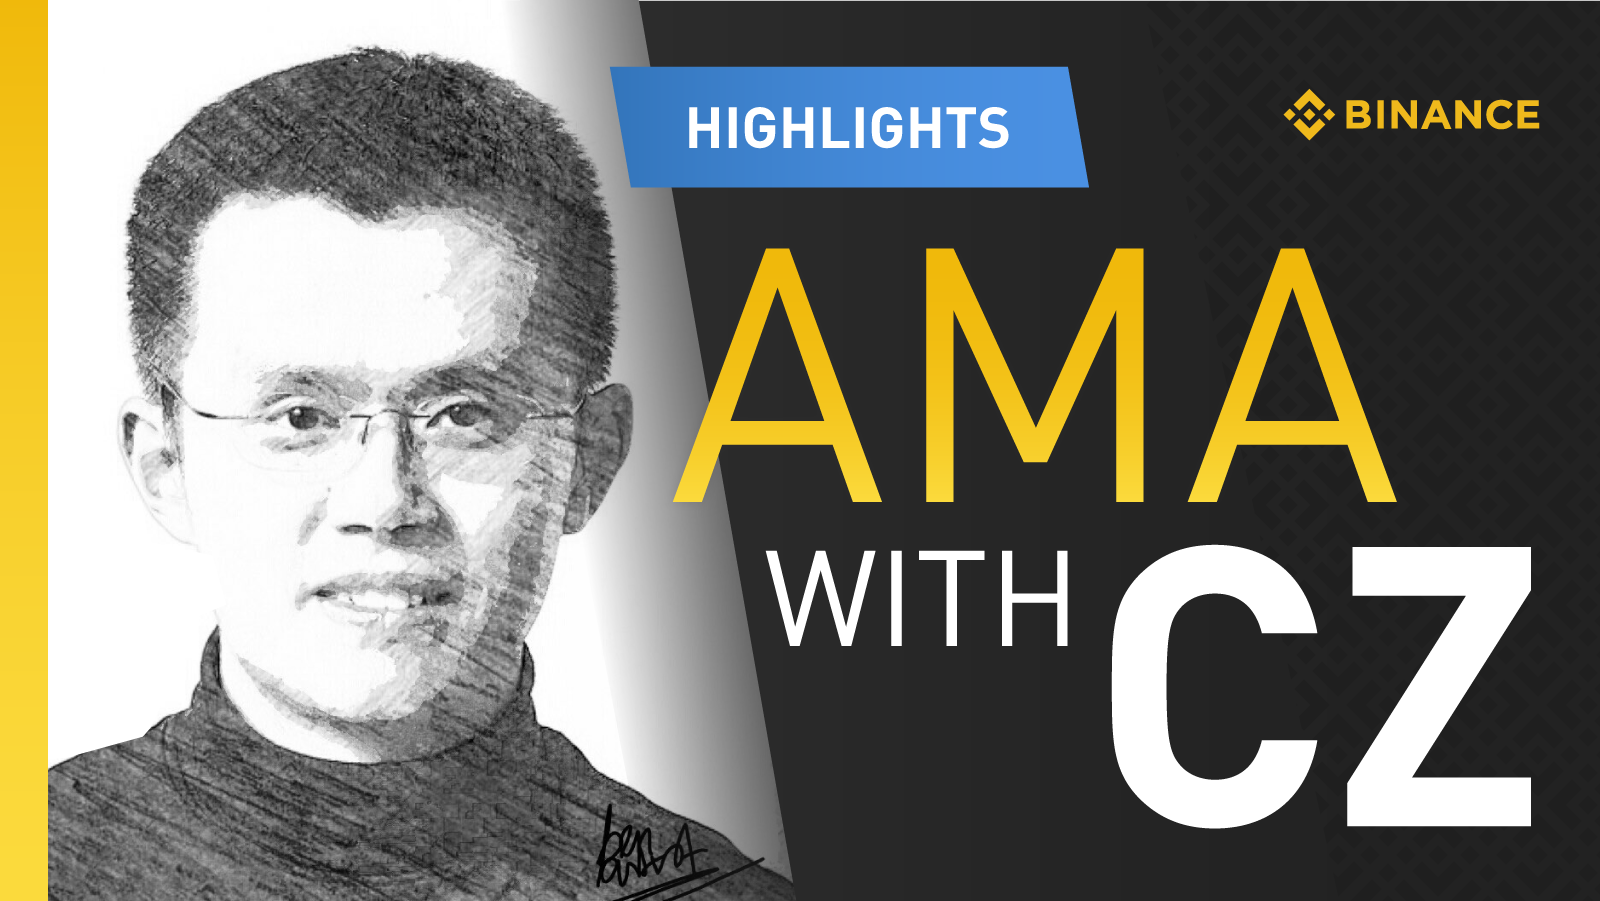 AMA with CZ: On Delisting, DEX, Launchpad, and More